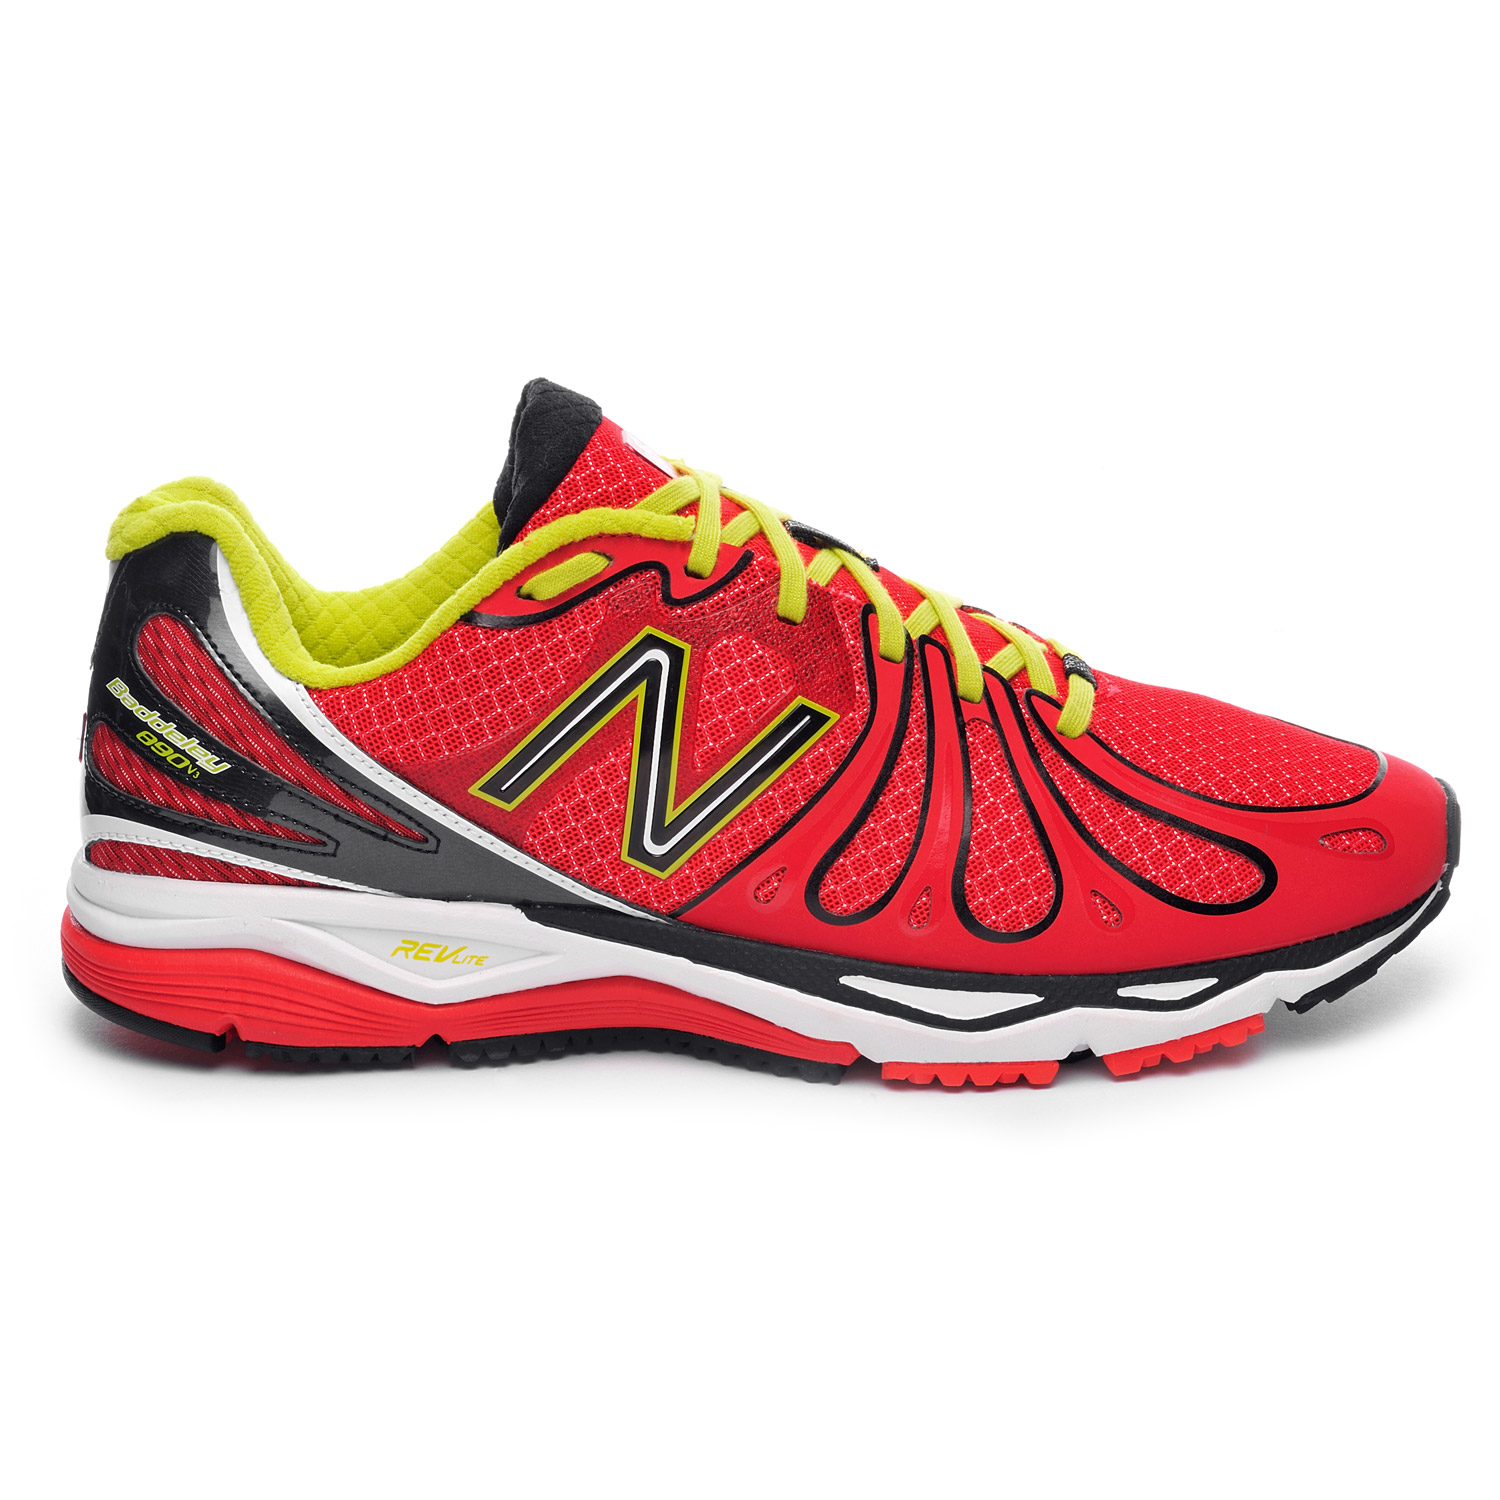 Chaussure Chaussure New New Homme Balance Homme Chaussure Running Balance New Running Balance Homme PZikXOuT